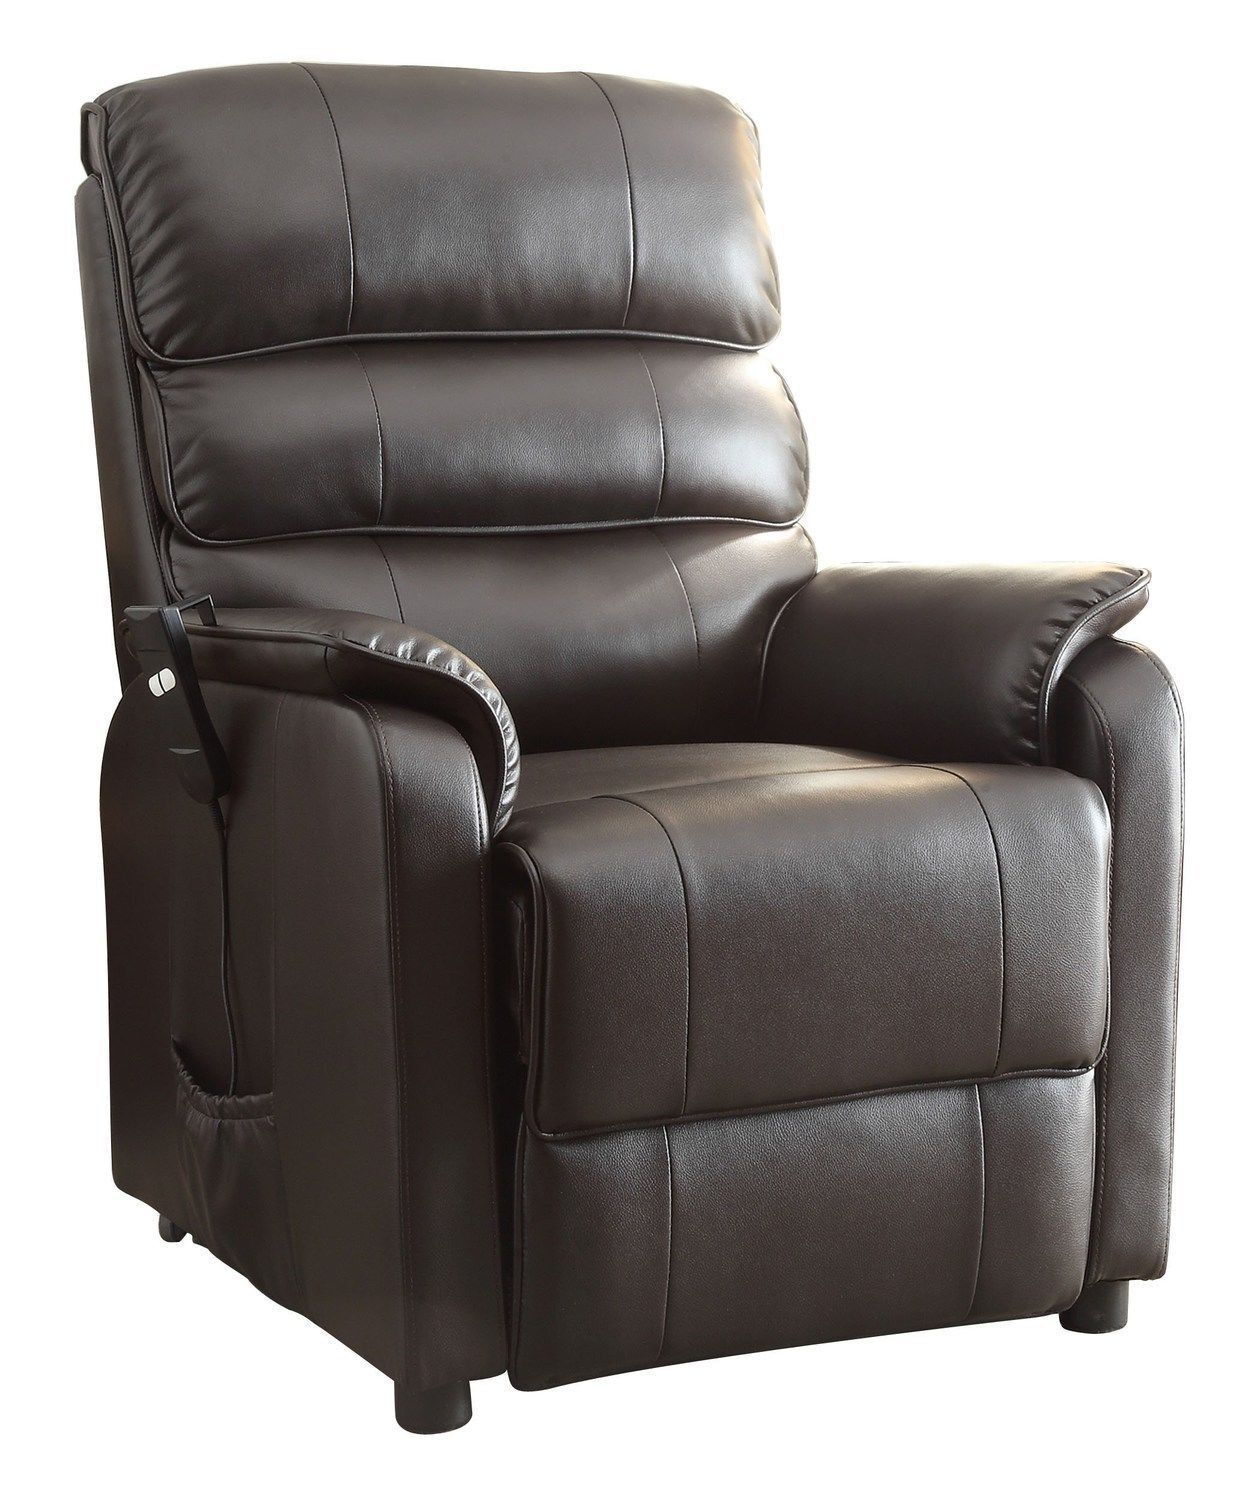 Leather Lift Chairs Best Power Recliners Ebay